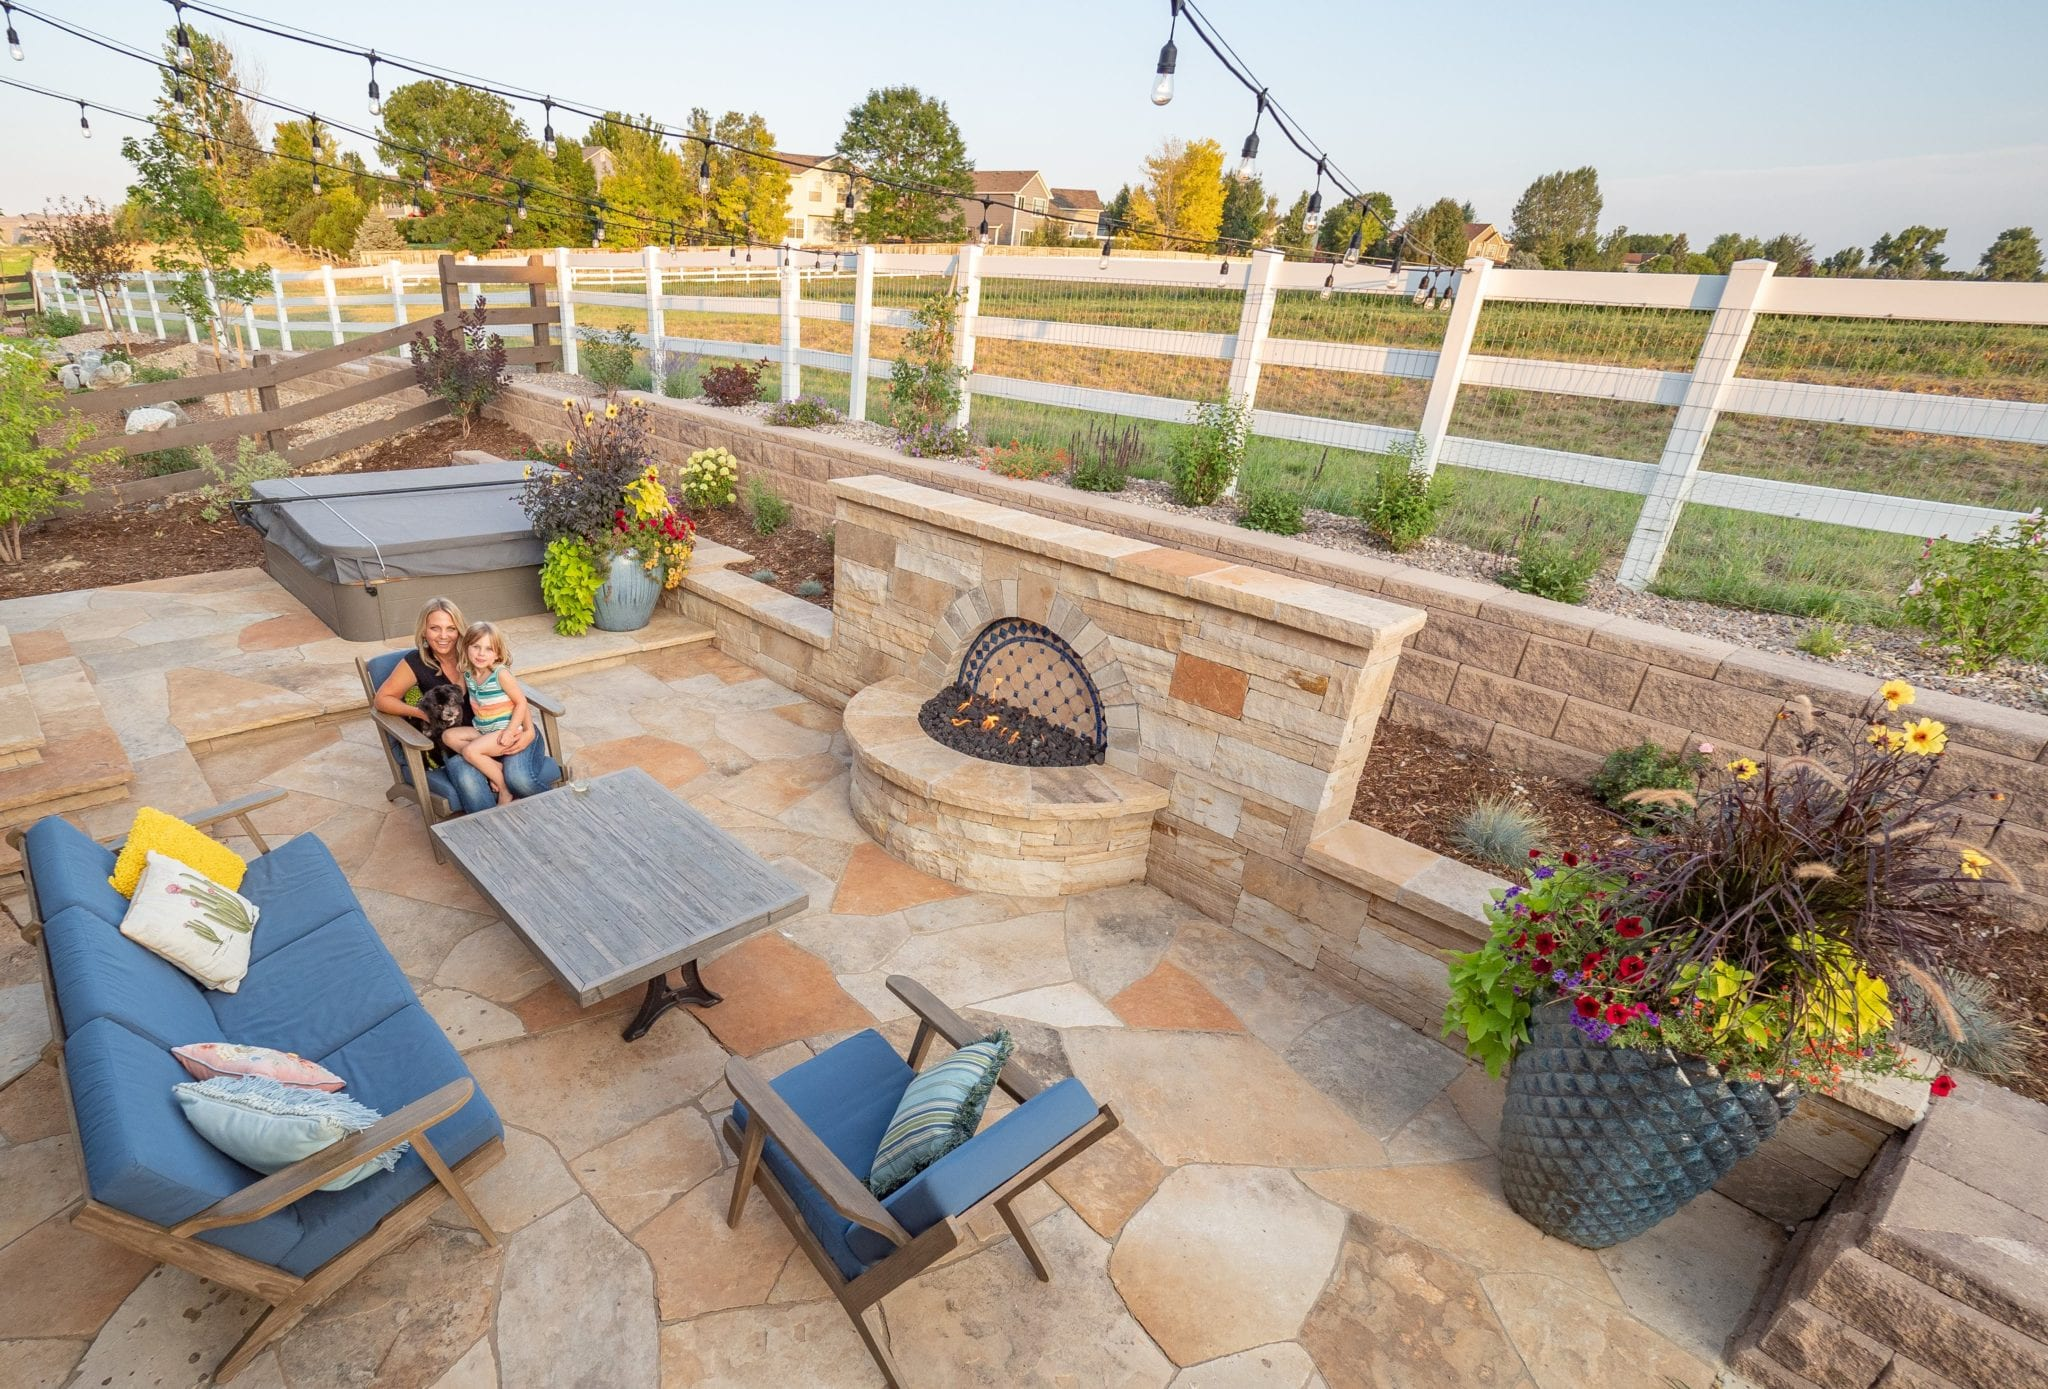 Boulder Landscaping Services For Design Build Projects In Boulder Co